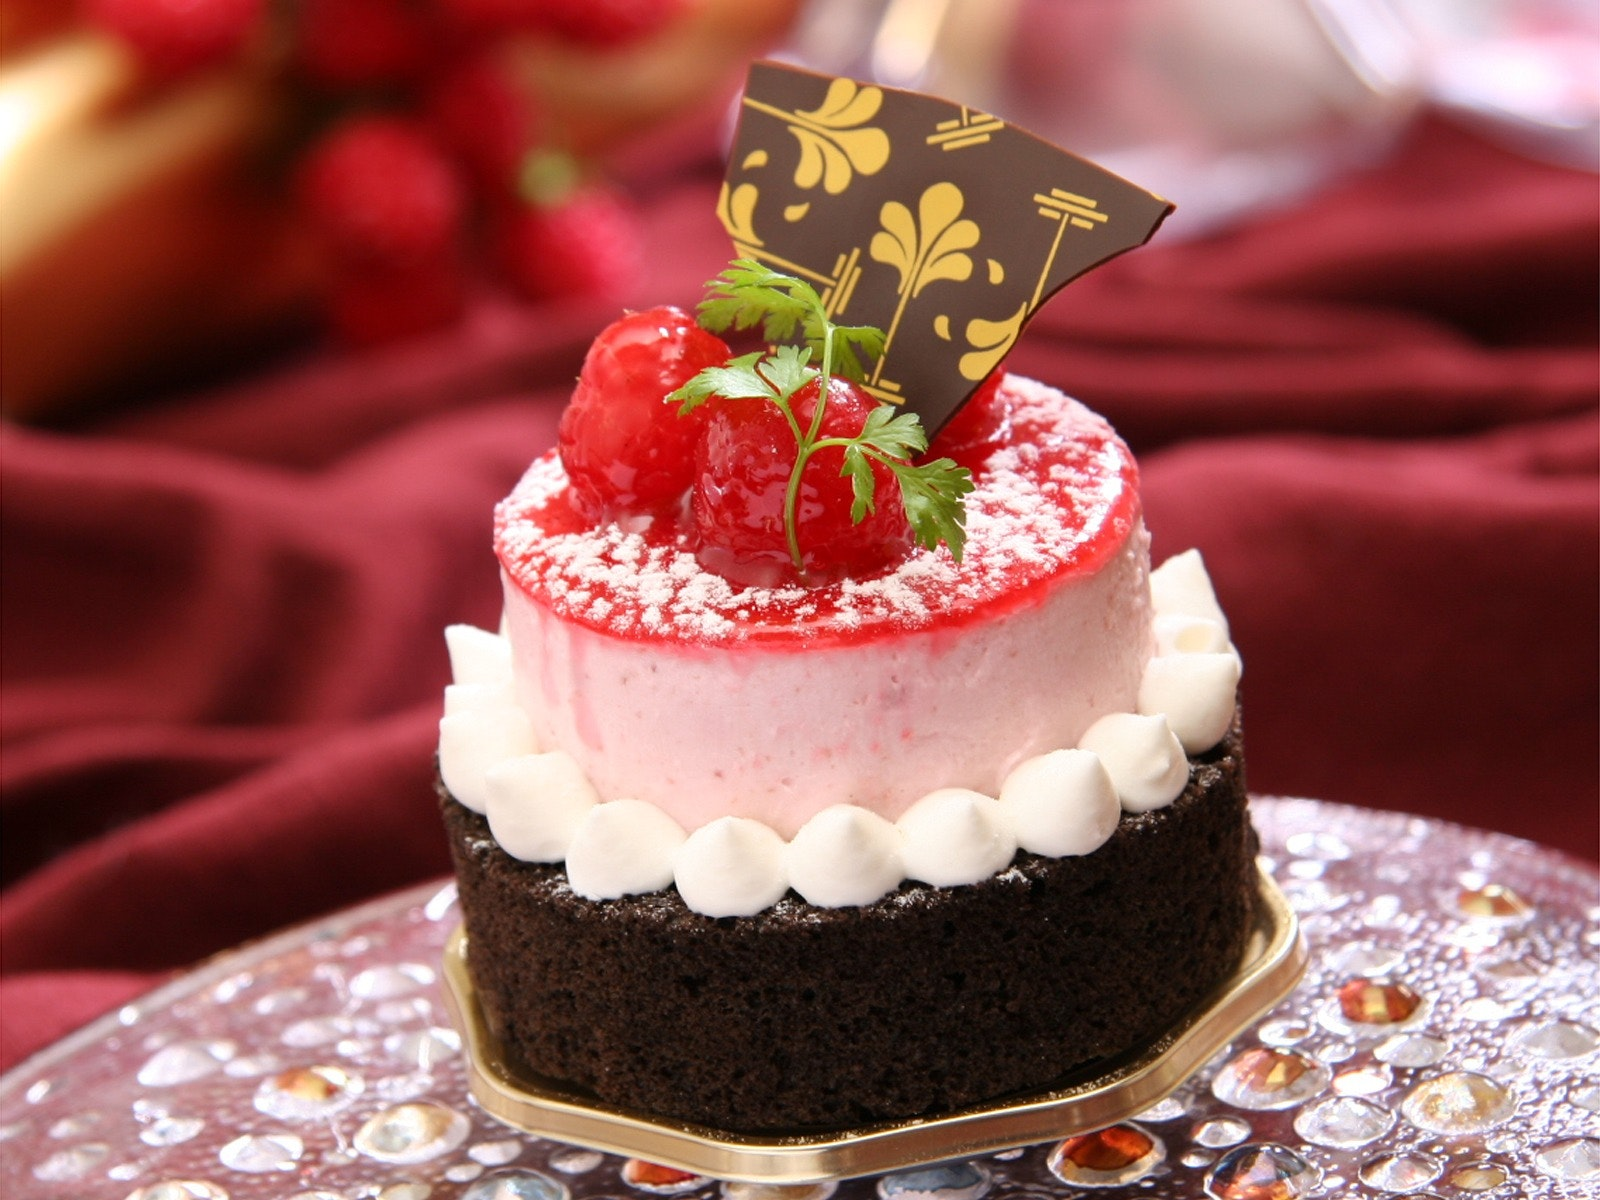 Chocolate Cake With White Icing And Strawberry On Top